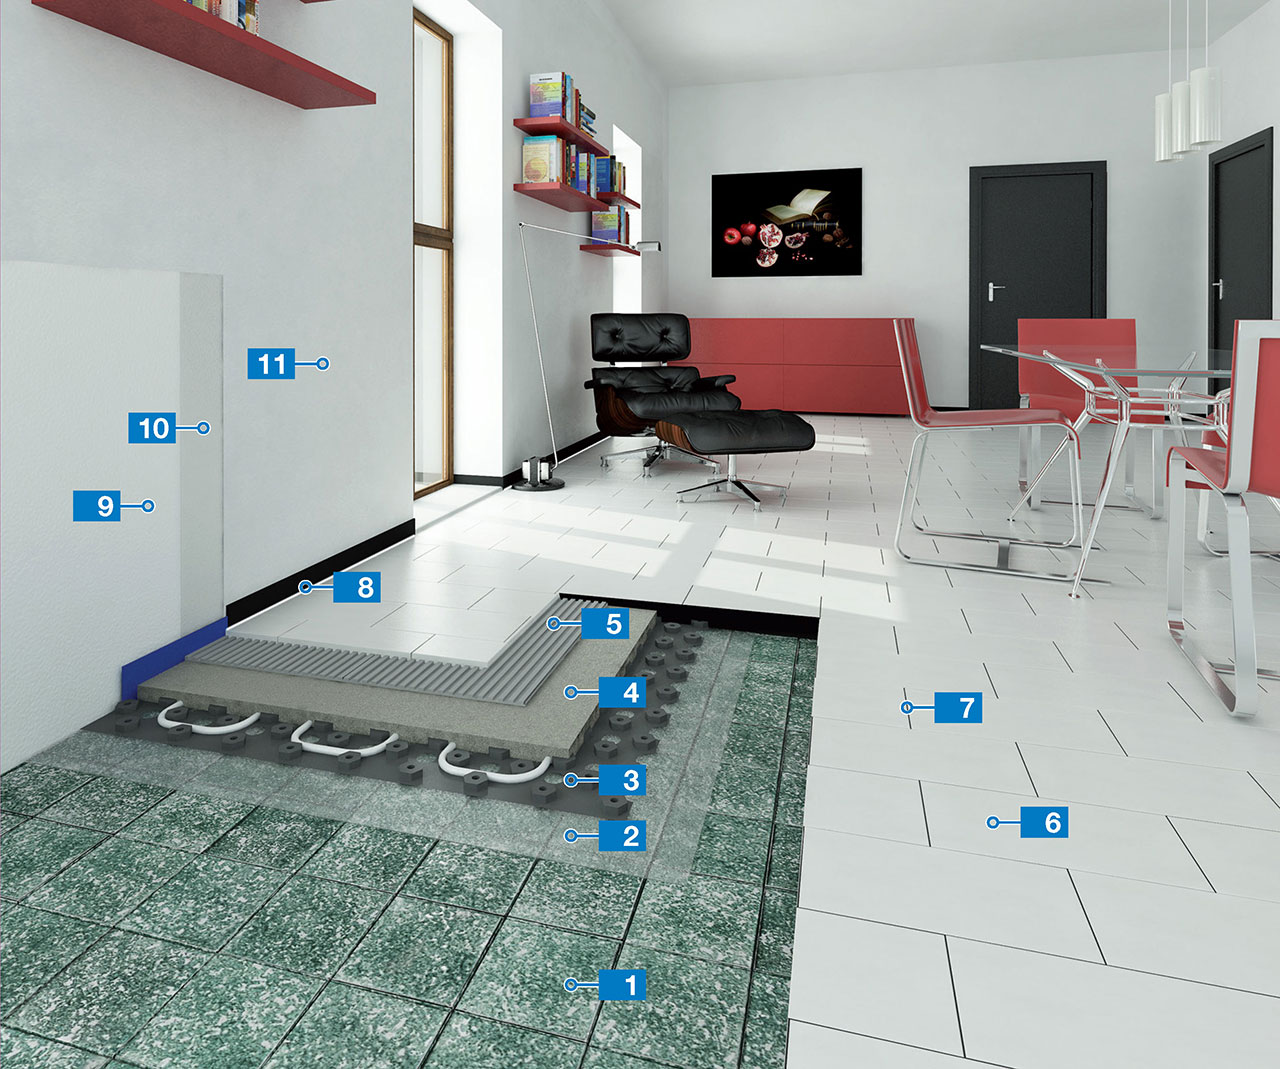 System for the installation of thin porcelain tiles on underfloor system for the installation of thin porcelain tiles on underfloor thin heating system dailygadgetfo Choice Image